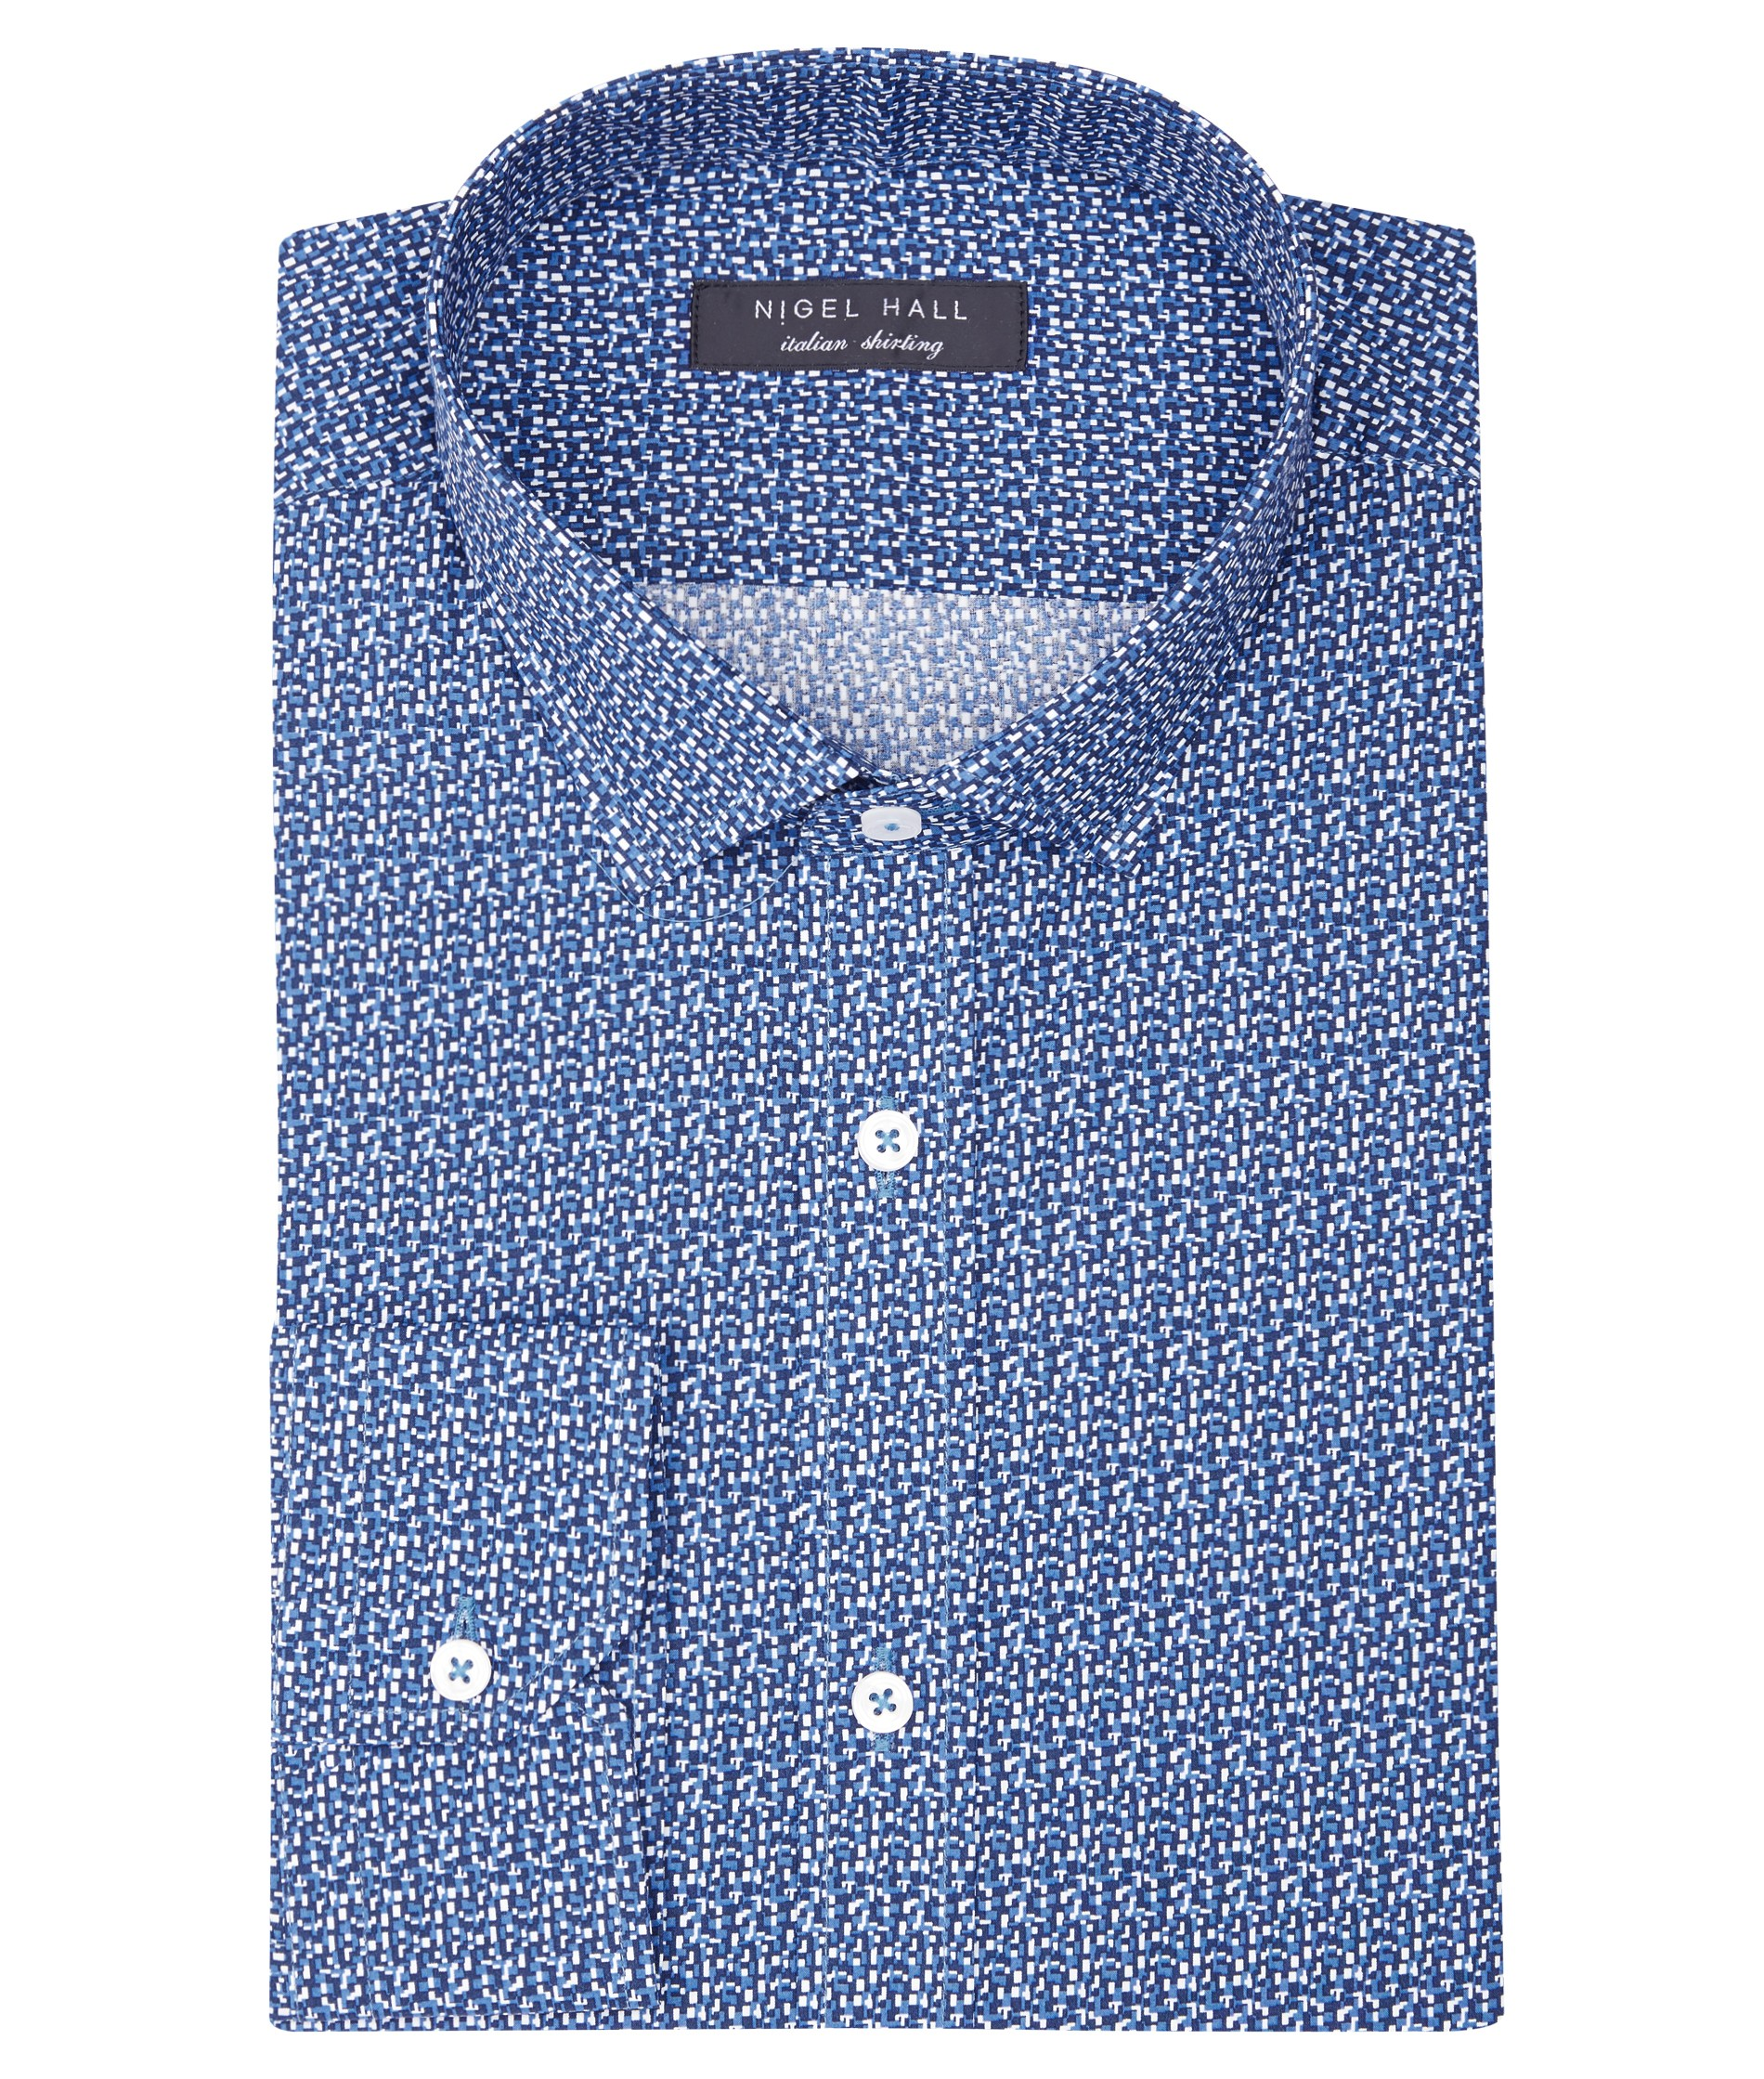 Nigel Hall Blue Cuboid Print Long Sleeve Small Spread Collar Cotton Shirt (Delight)